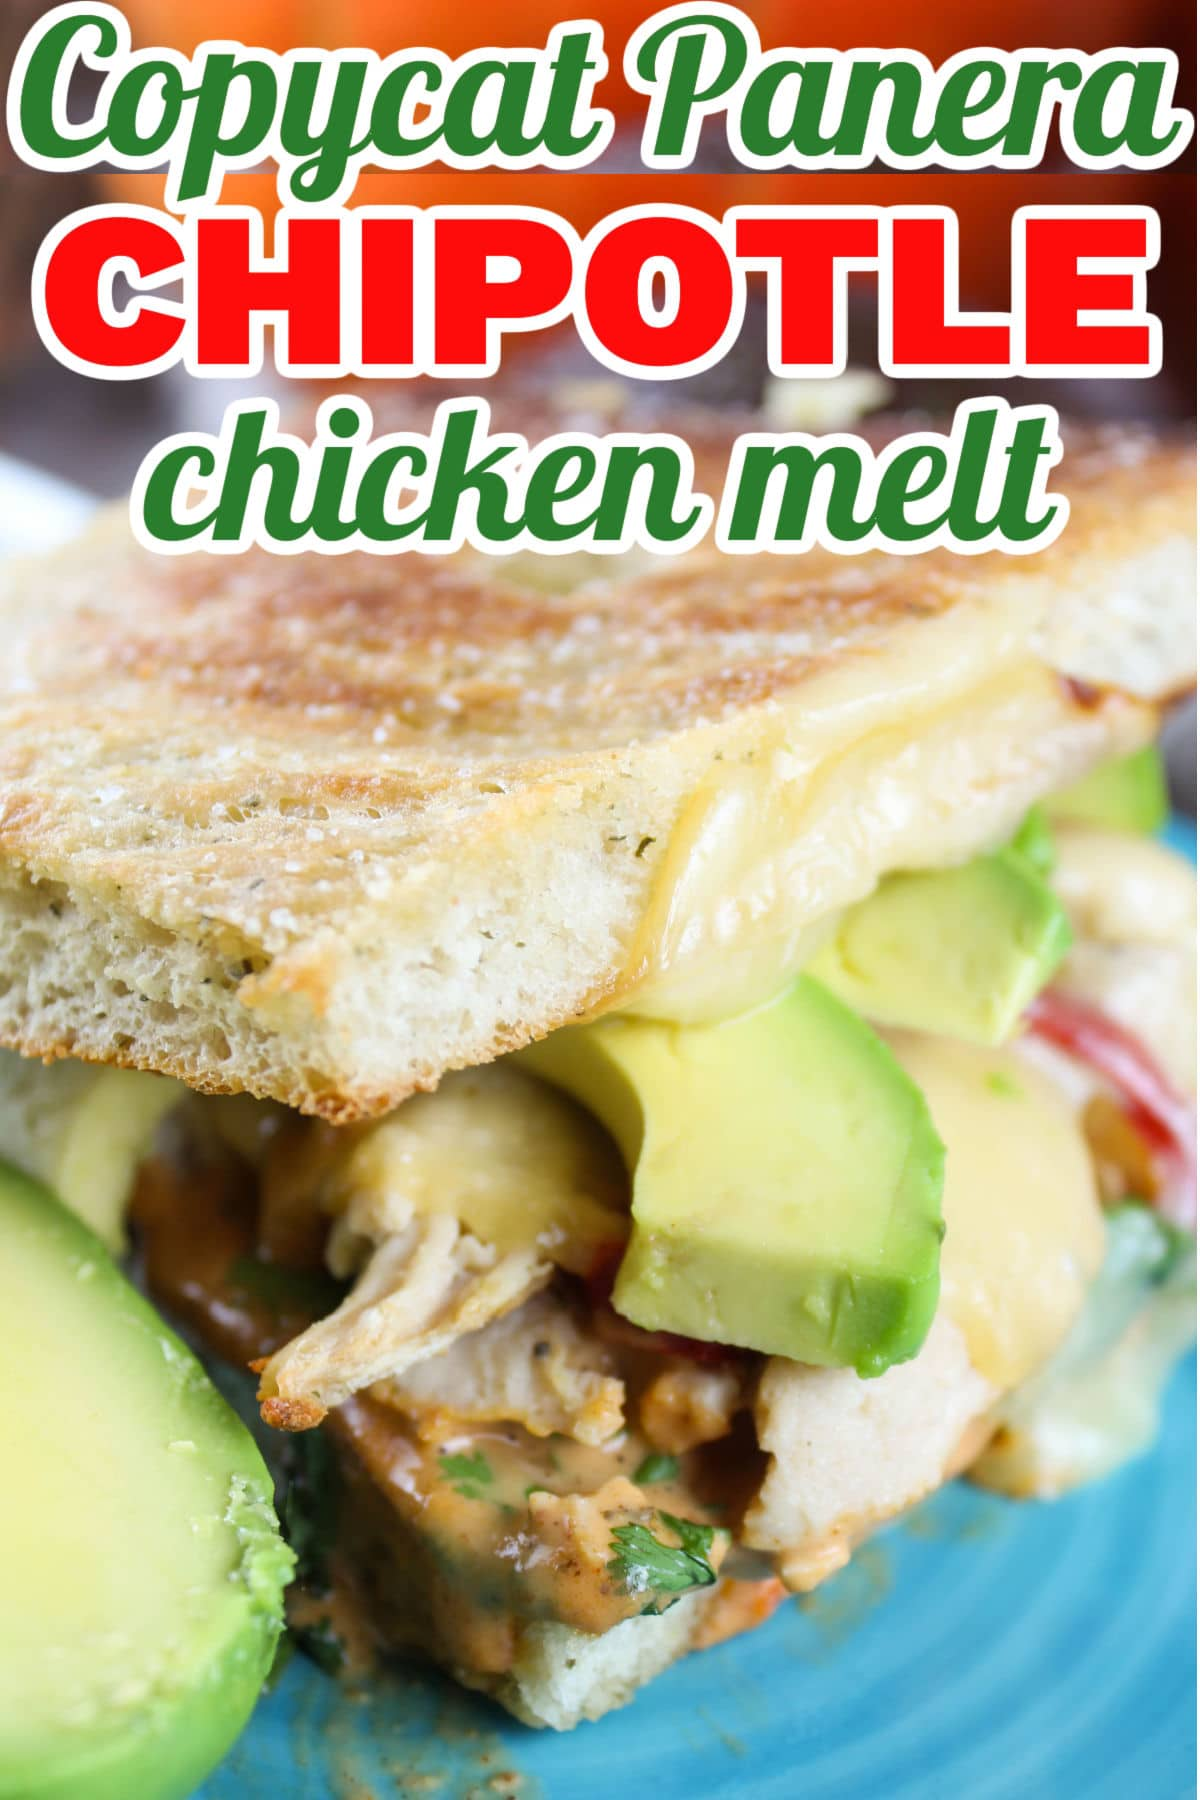 This Copycat Panera Chipotle Chicken Avocado Melt is one of my favorites from Panera! Pulled chicken, smoked Gouda, fresh avocado, cilantro, zesty sweet peppers and chipotle sauce on fresh baked focaccia. via @foodhussy